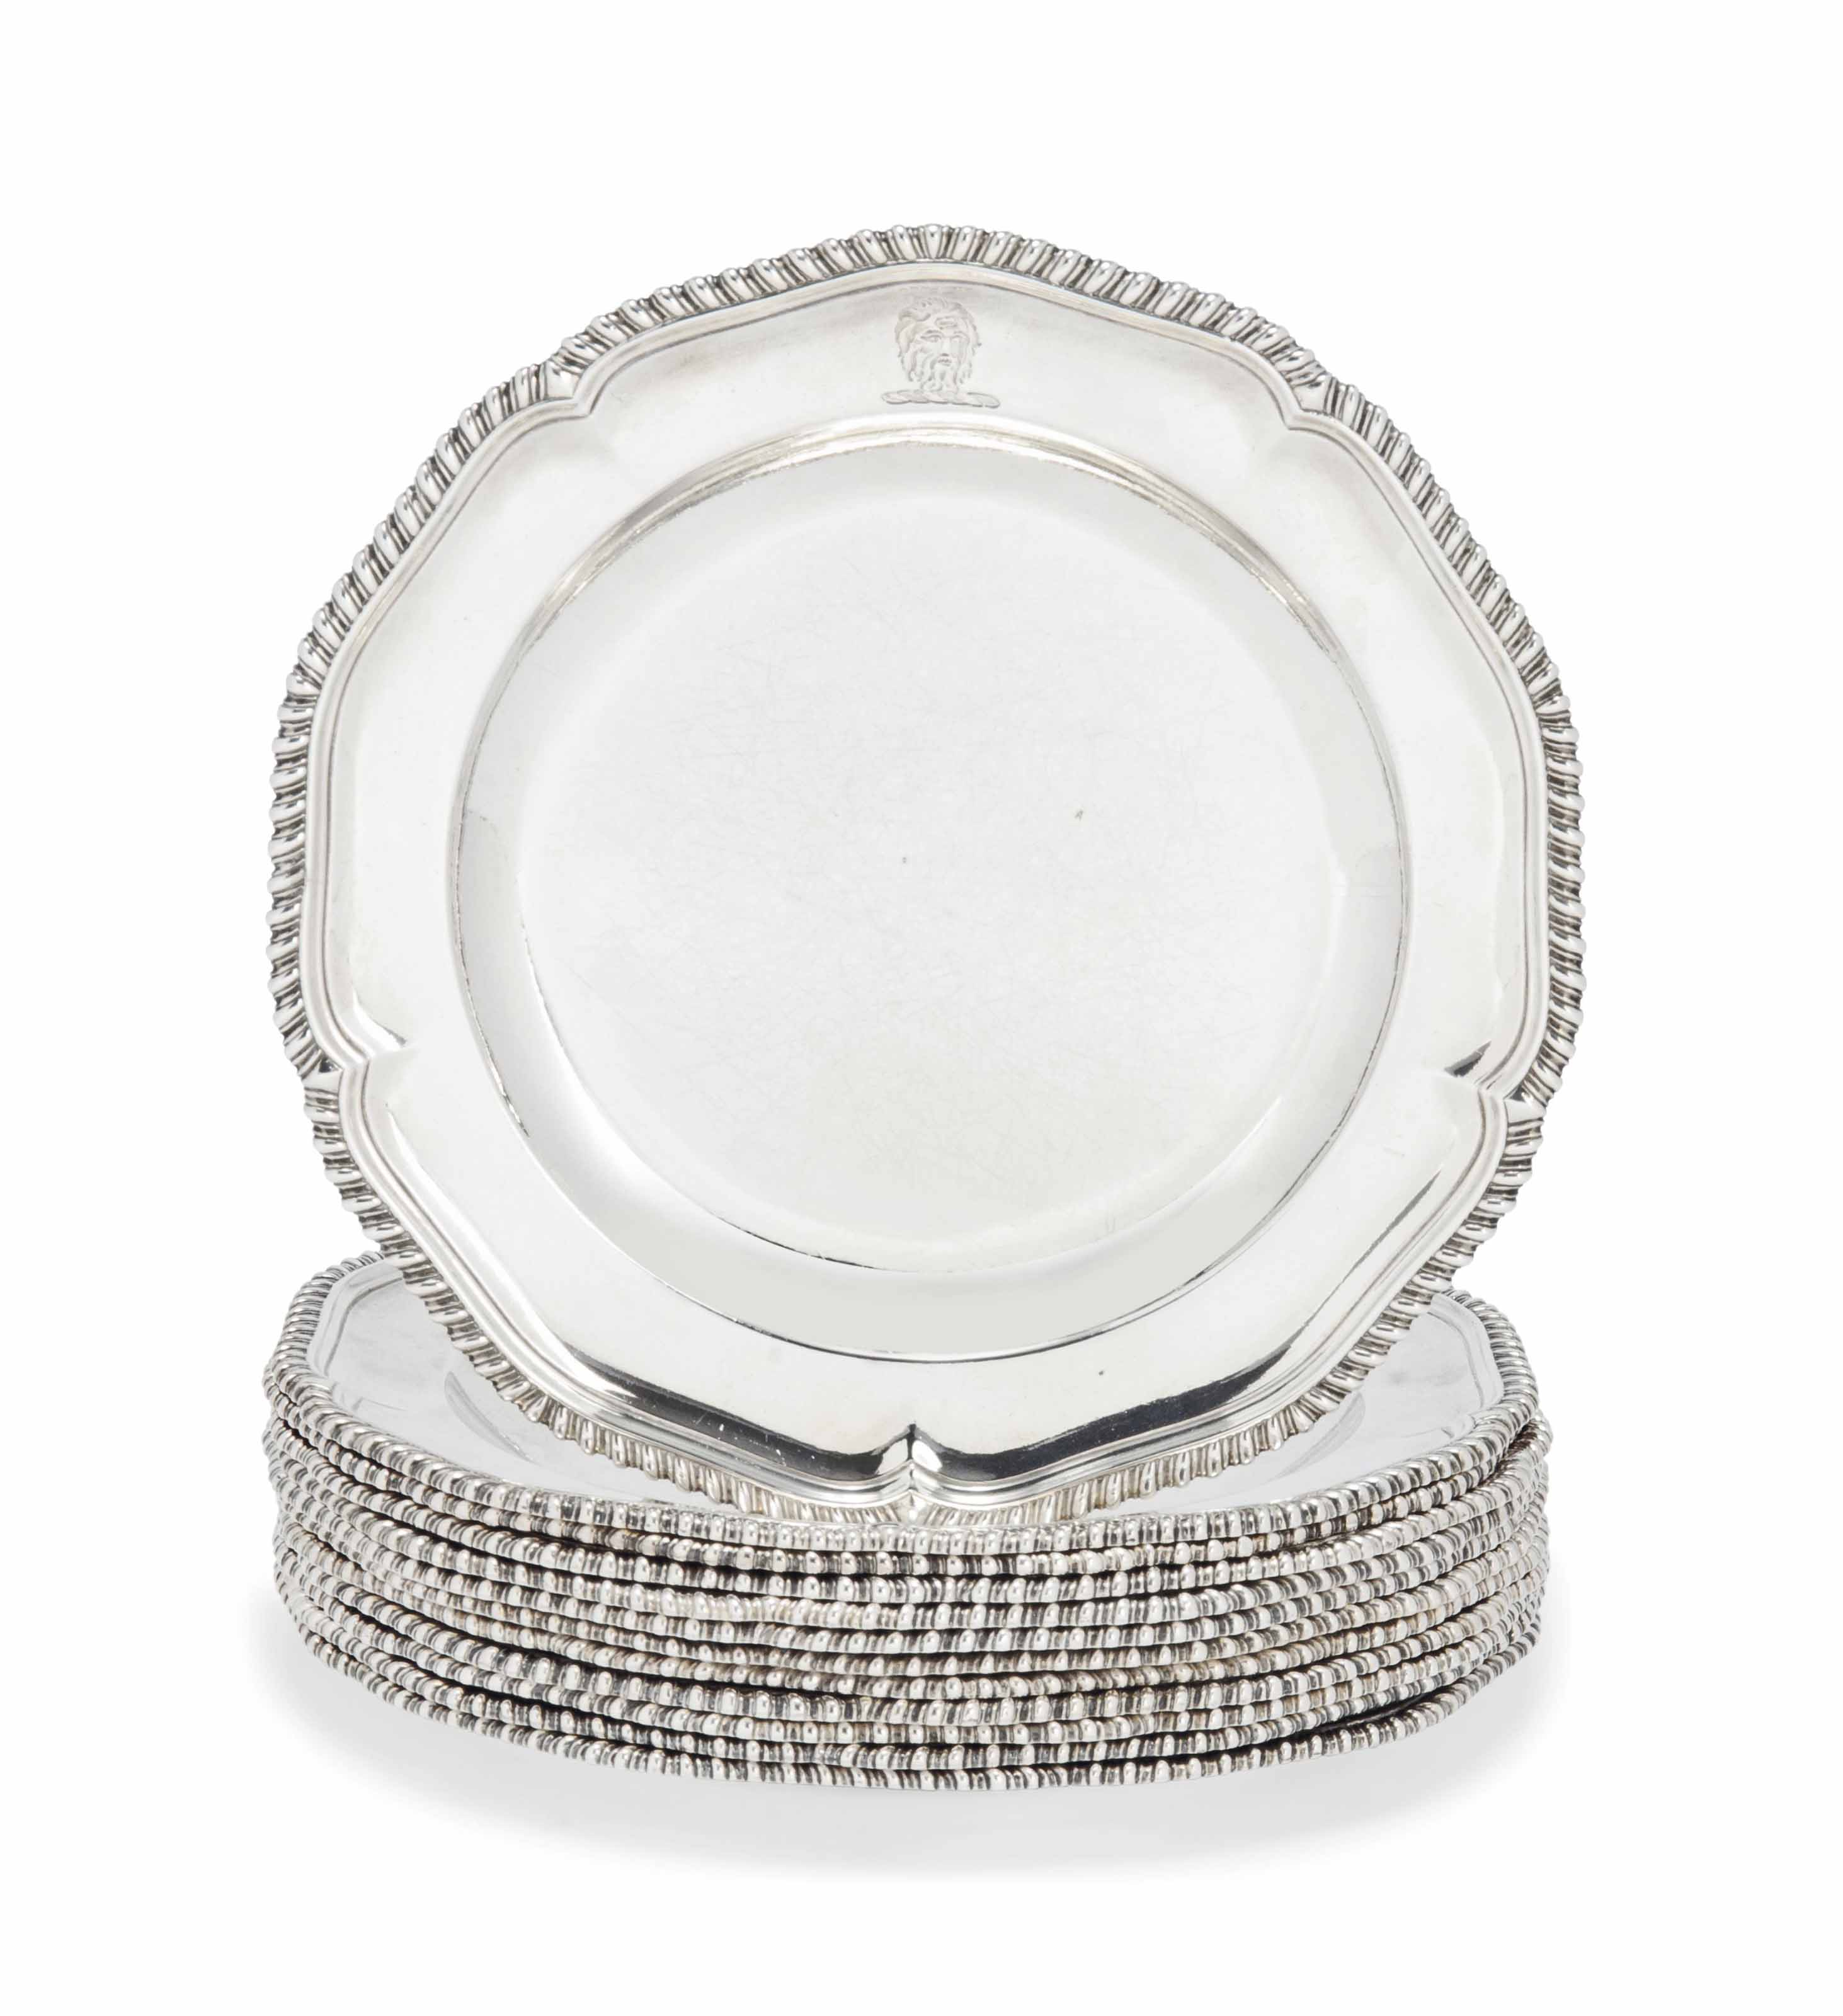 A SET OF ELEVEN GEORGE III SILVER DINNER PLATES